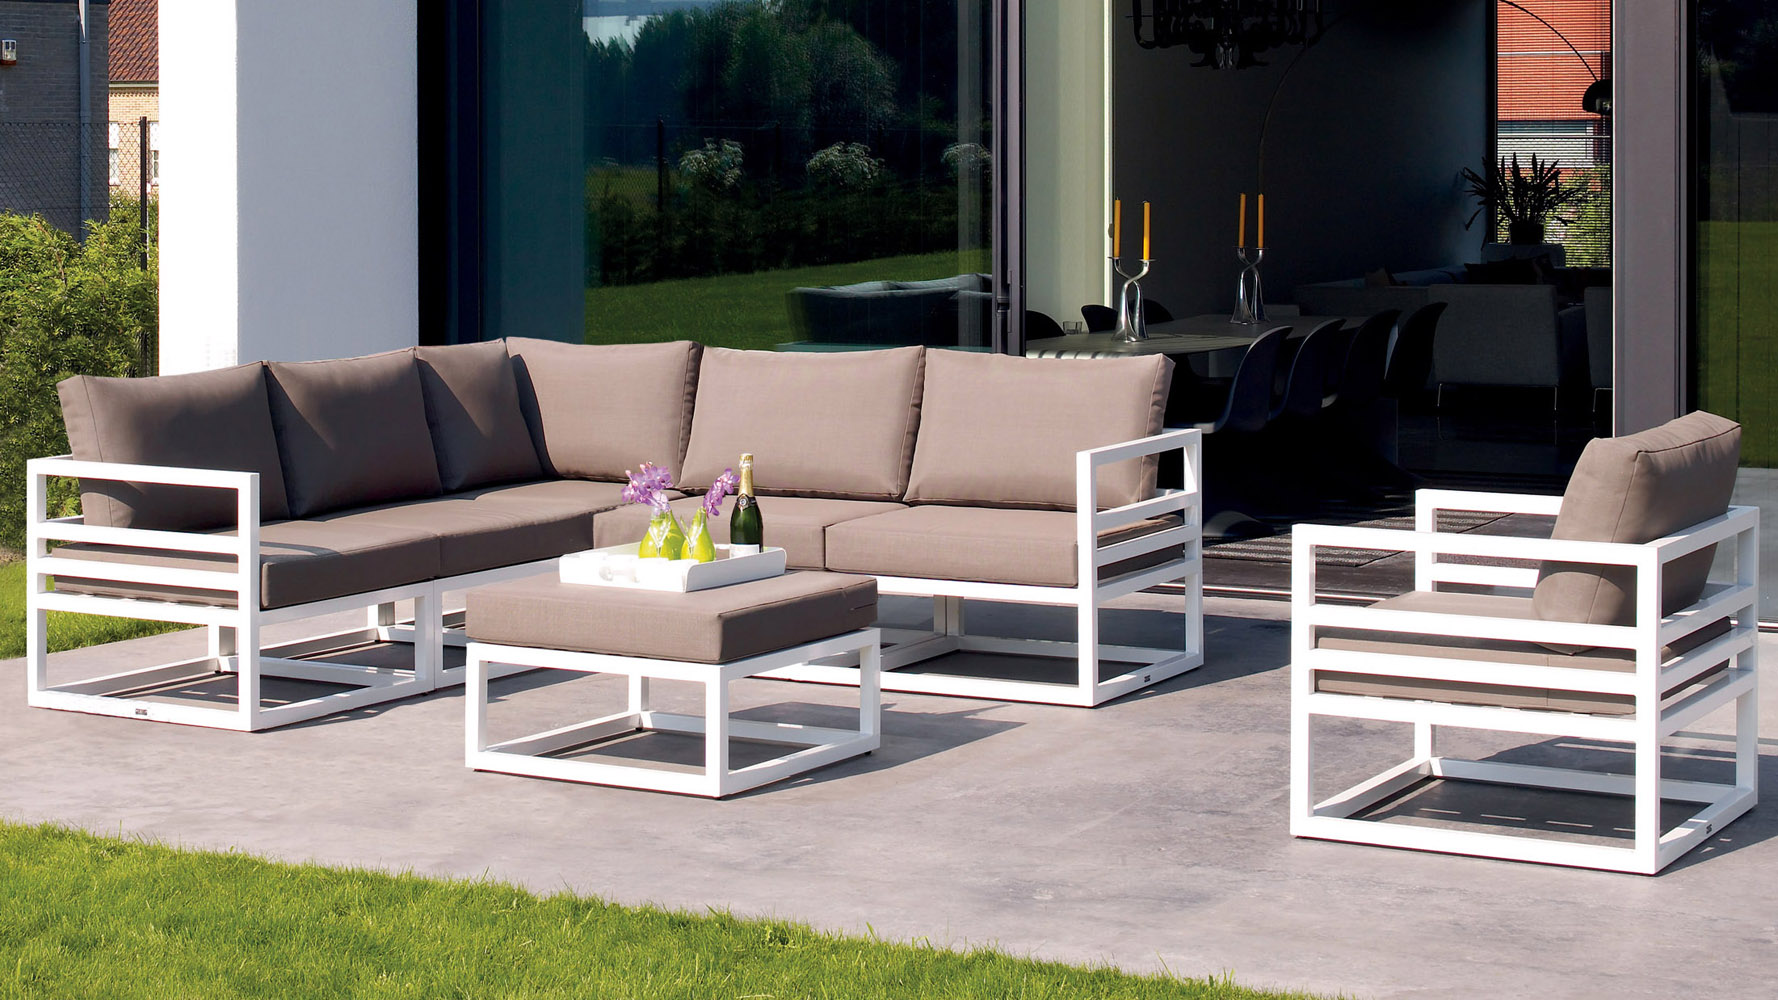 Beautiful outdoor living furniture - 7 outdoor living furniture